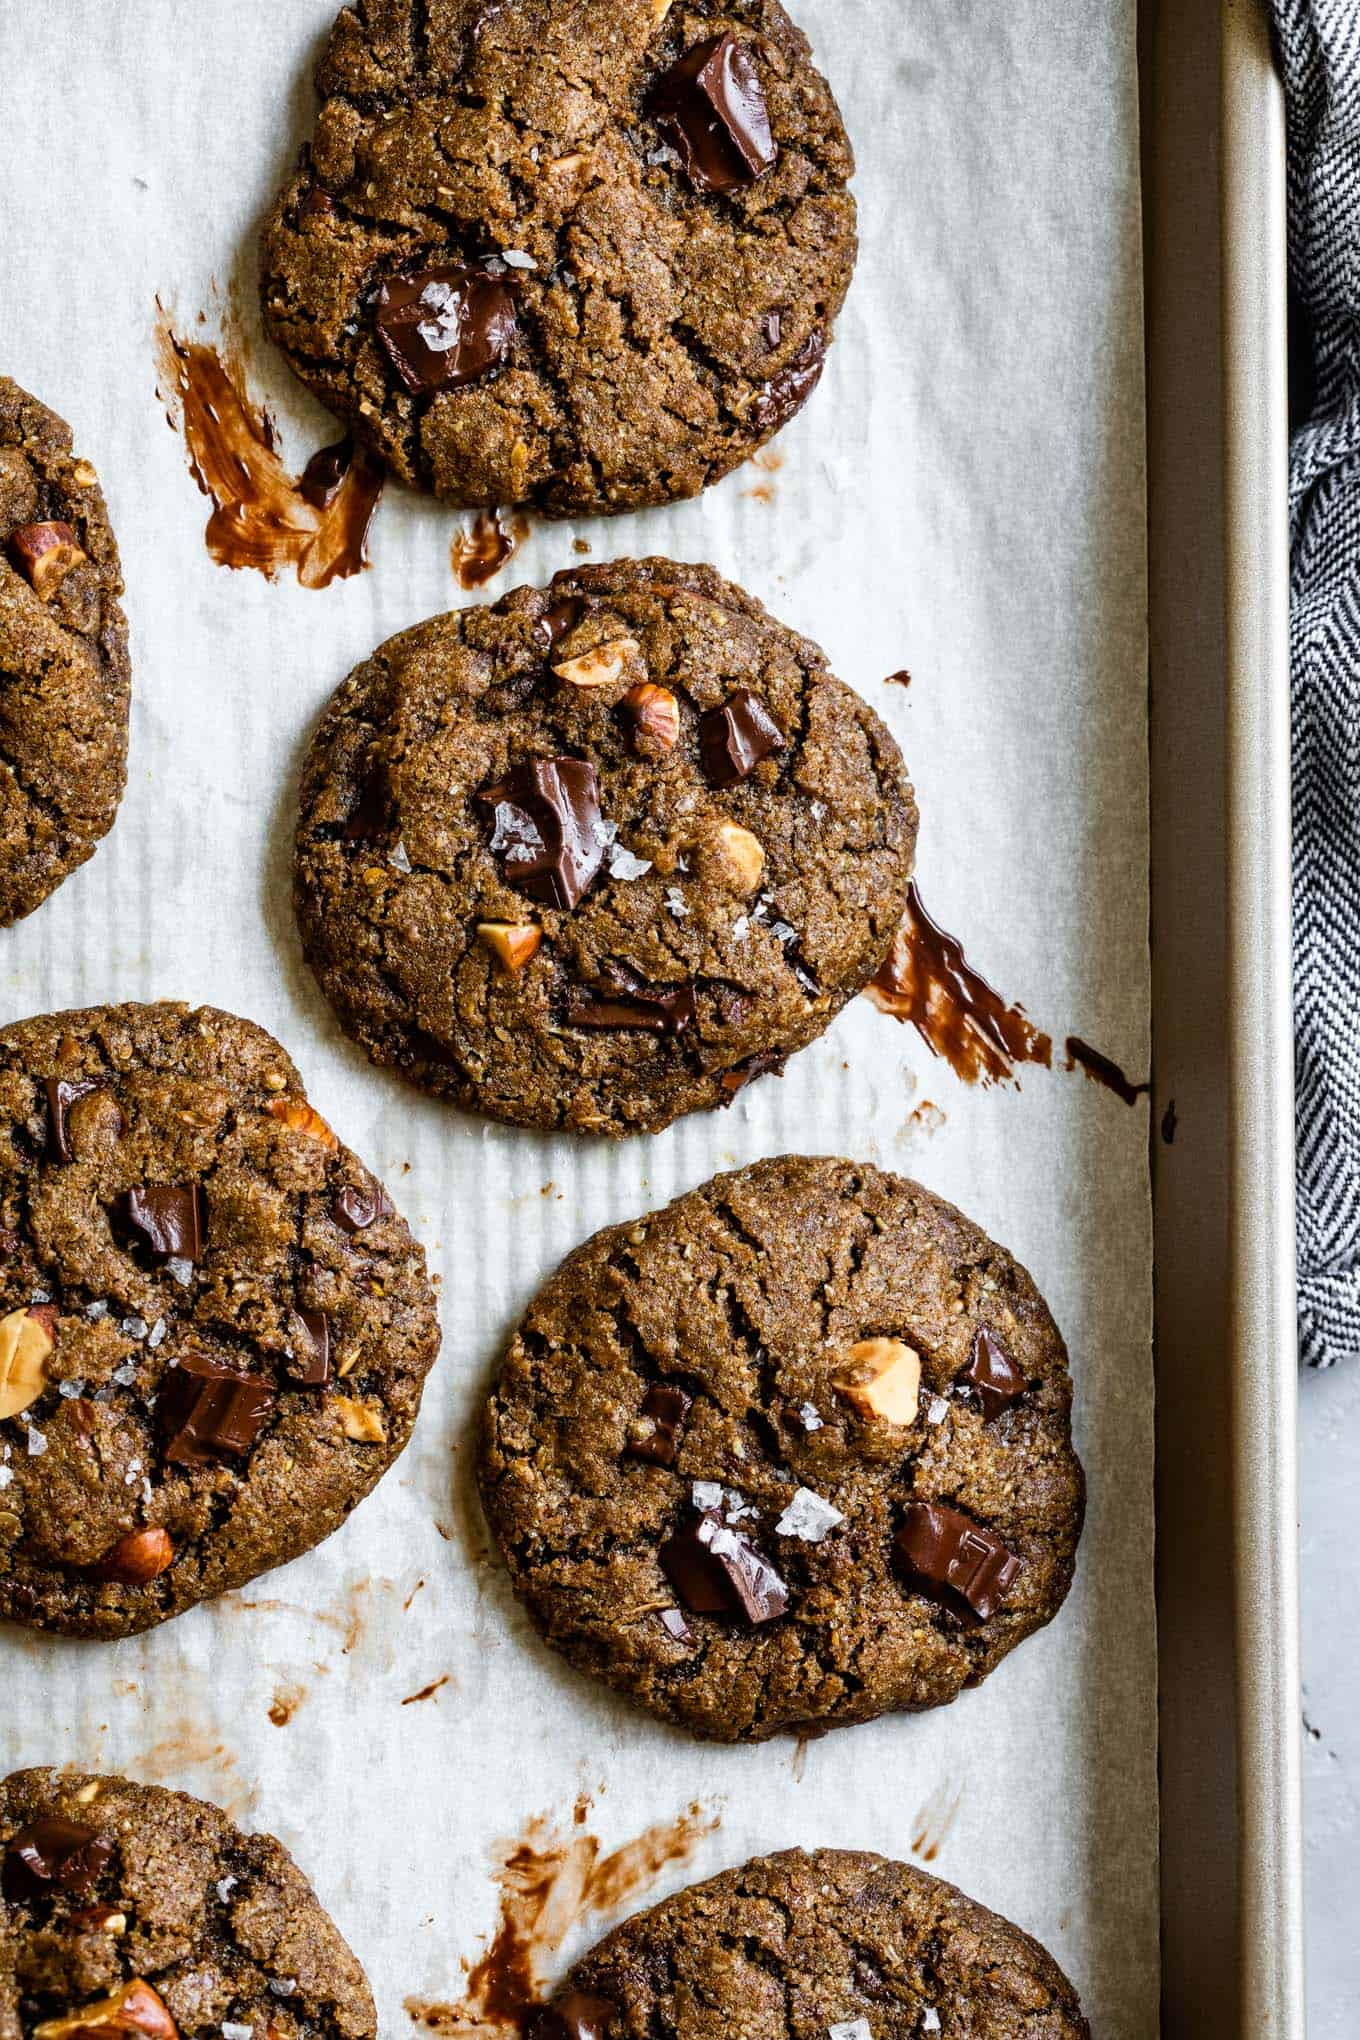 Vegan Gluten-Free Chocolate Chip Cookies Recipe